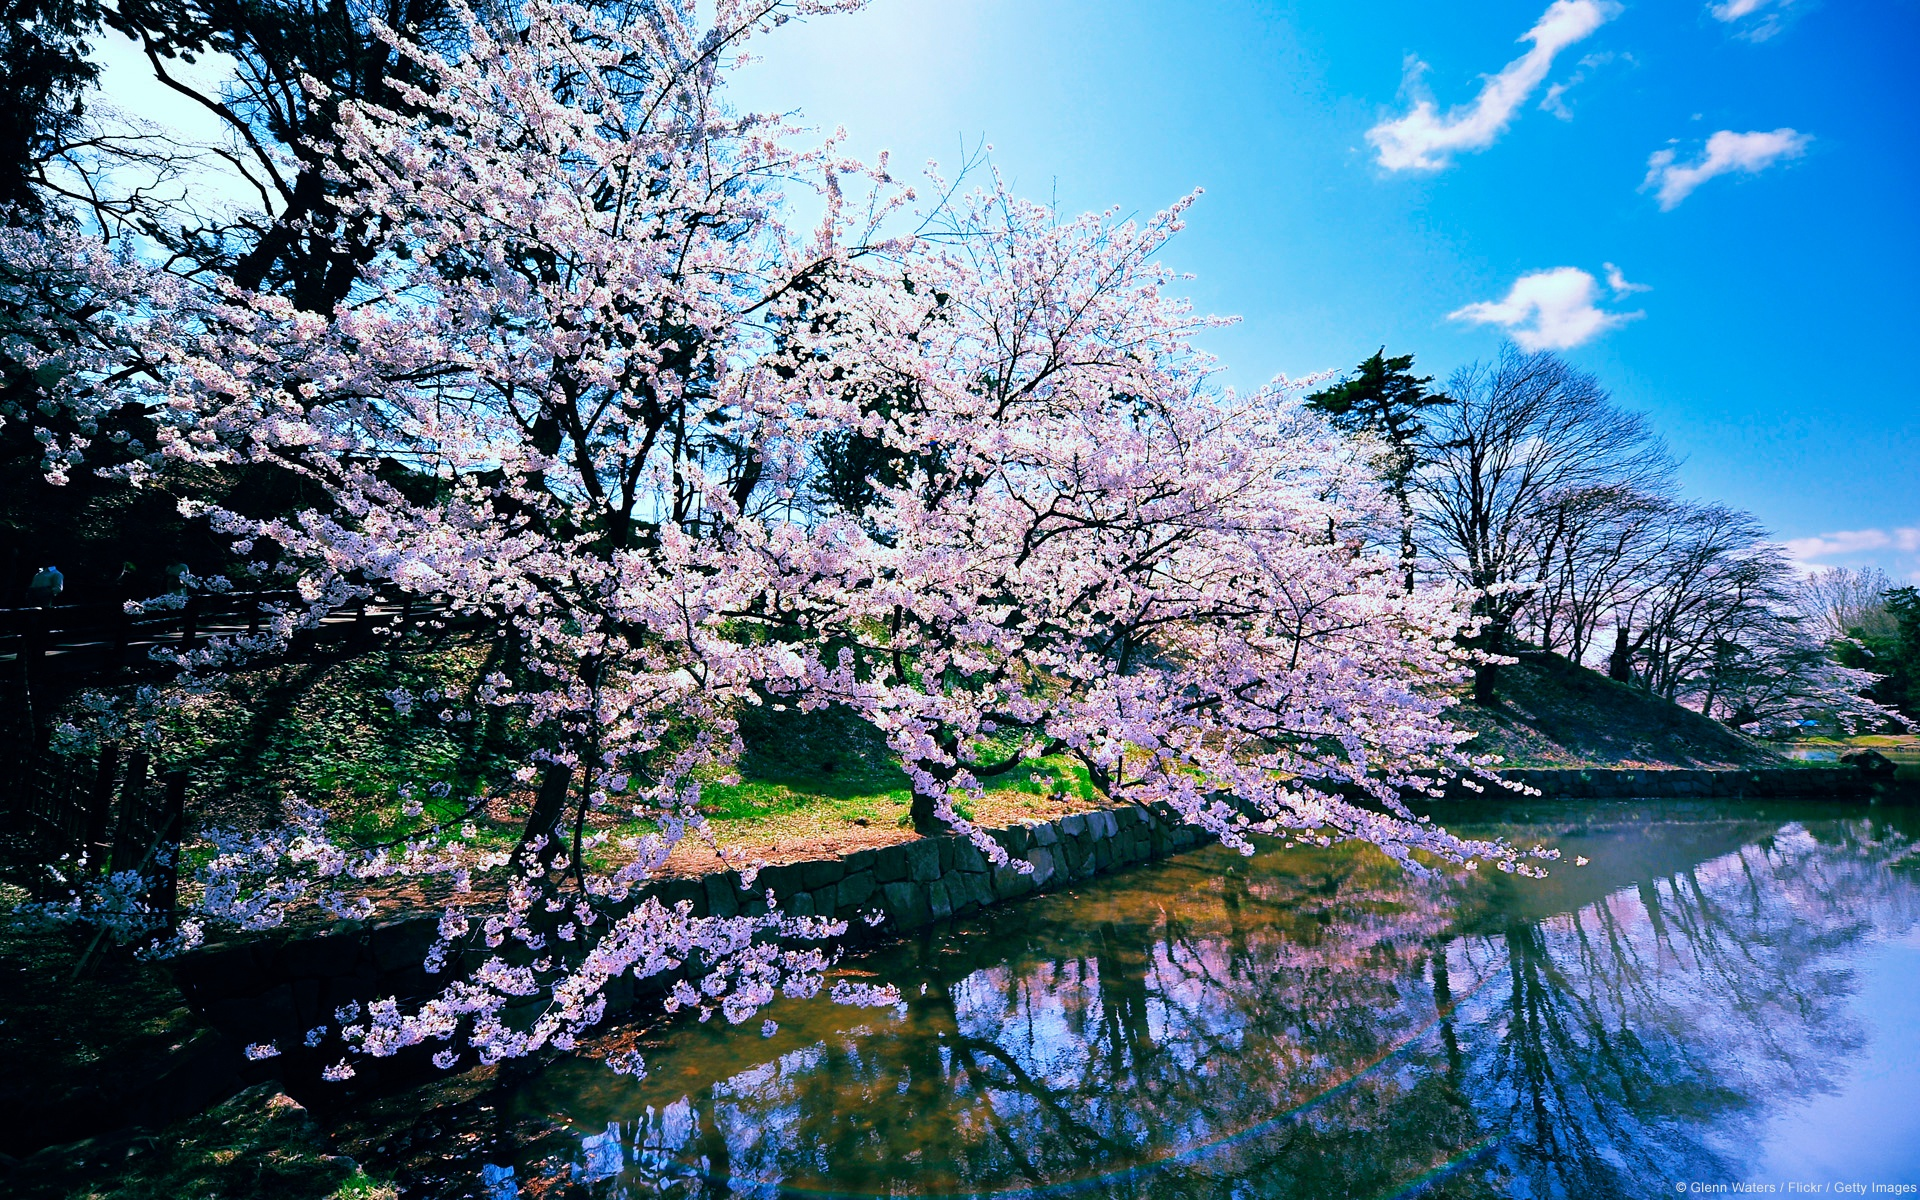 Must see Wallpaper High Resolution Cherry Blossom - cherry_blossom_trees_10690  Trends_28143.jpg